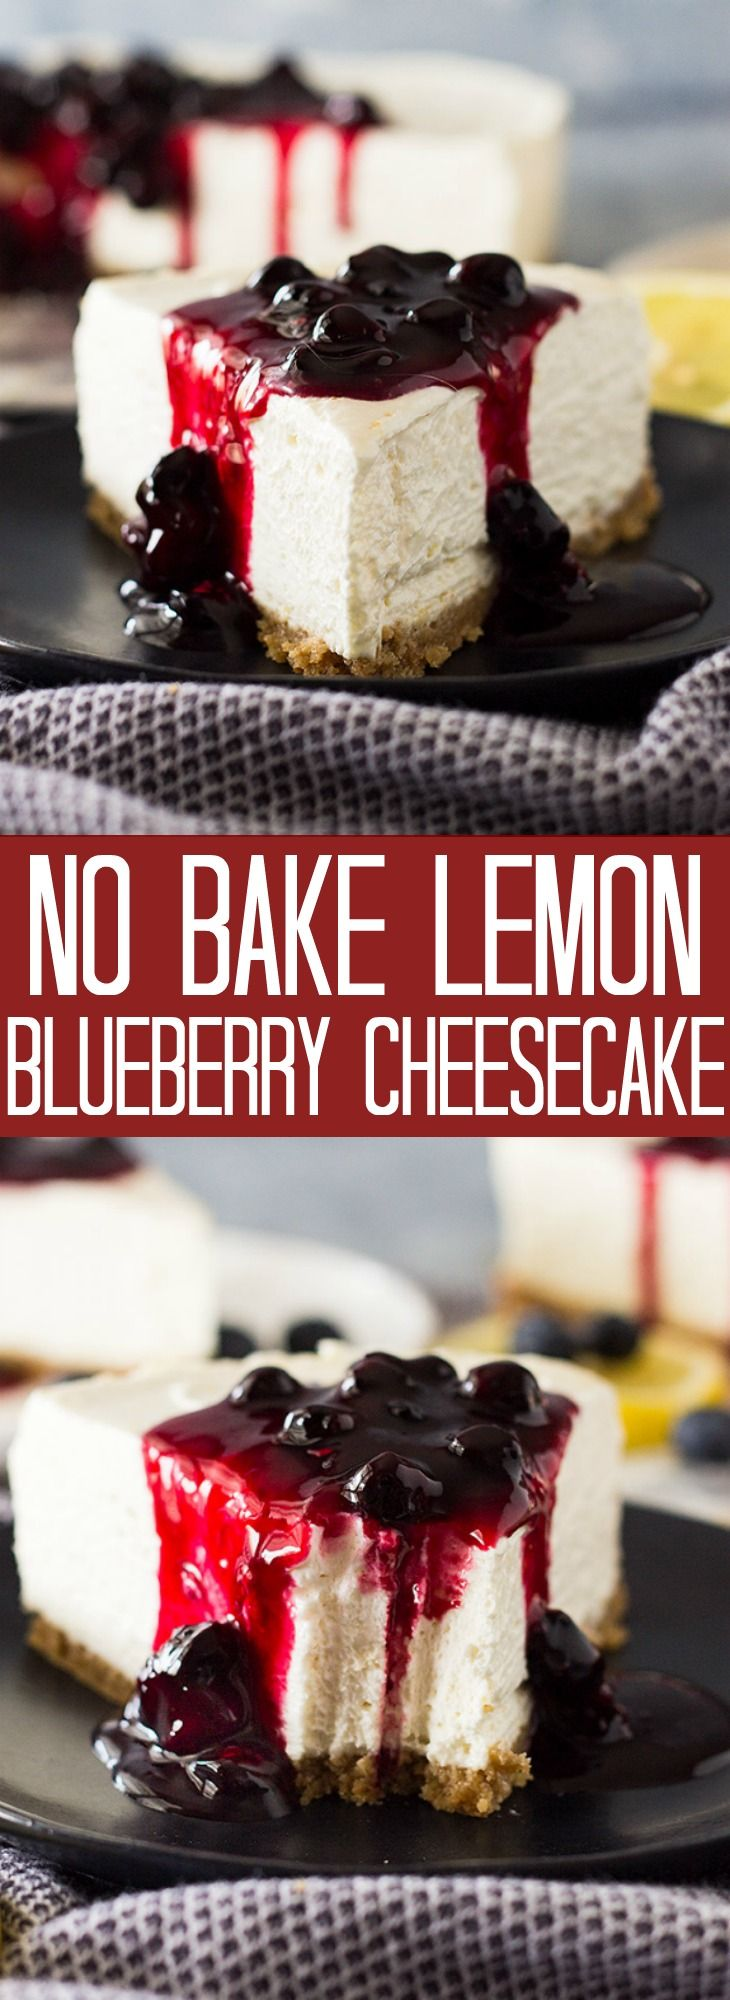 No Bake Lemon Blueberry Cheesecake | Countryside Cravings